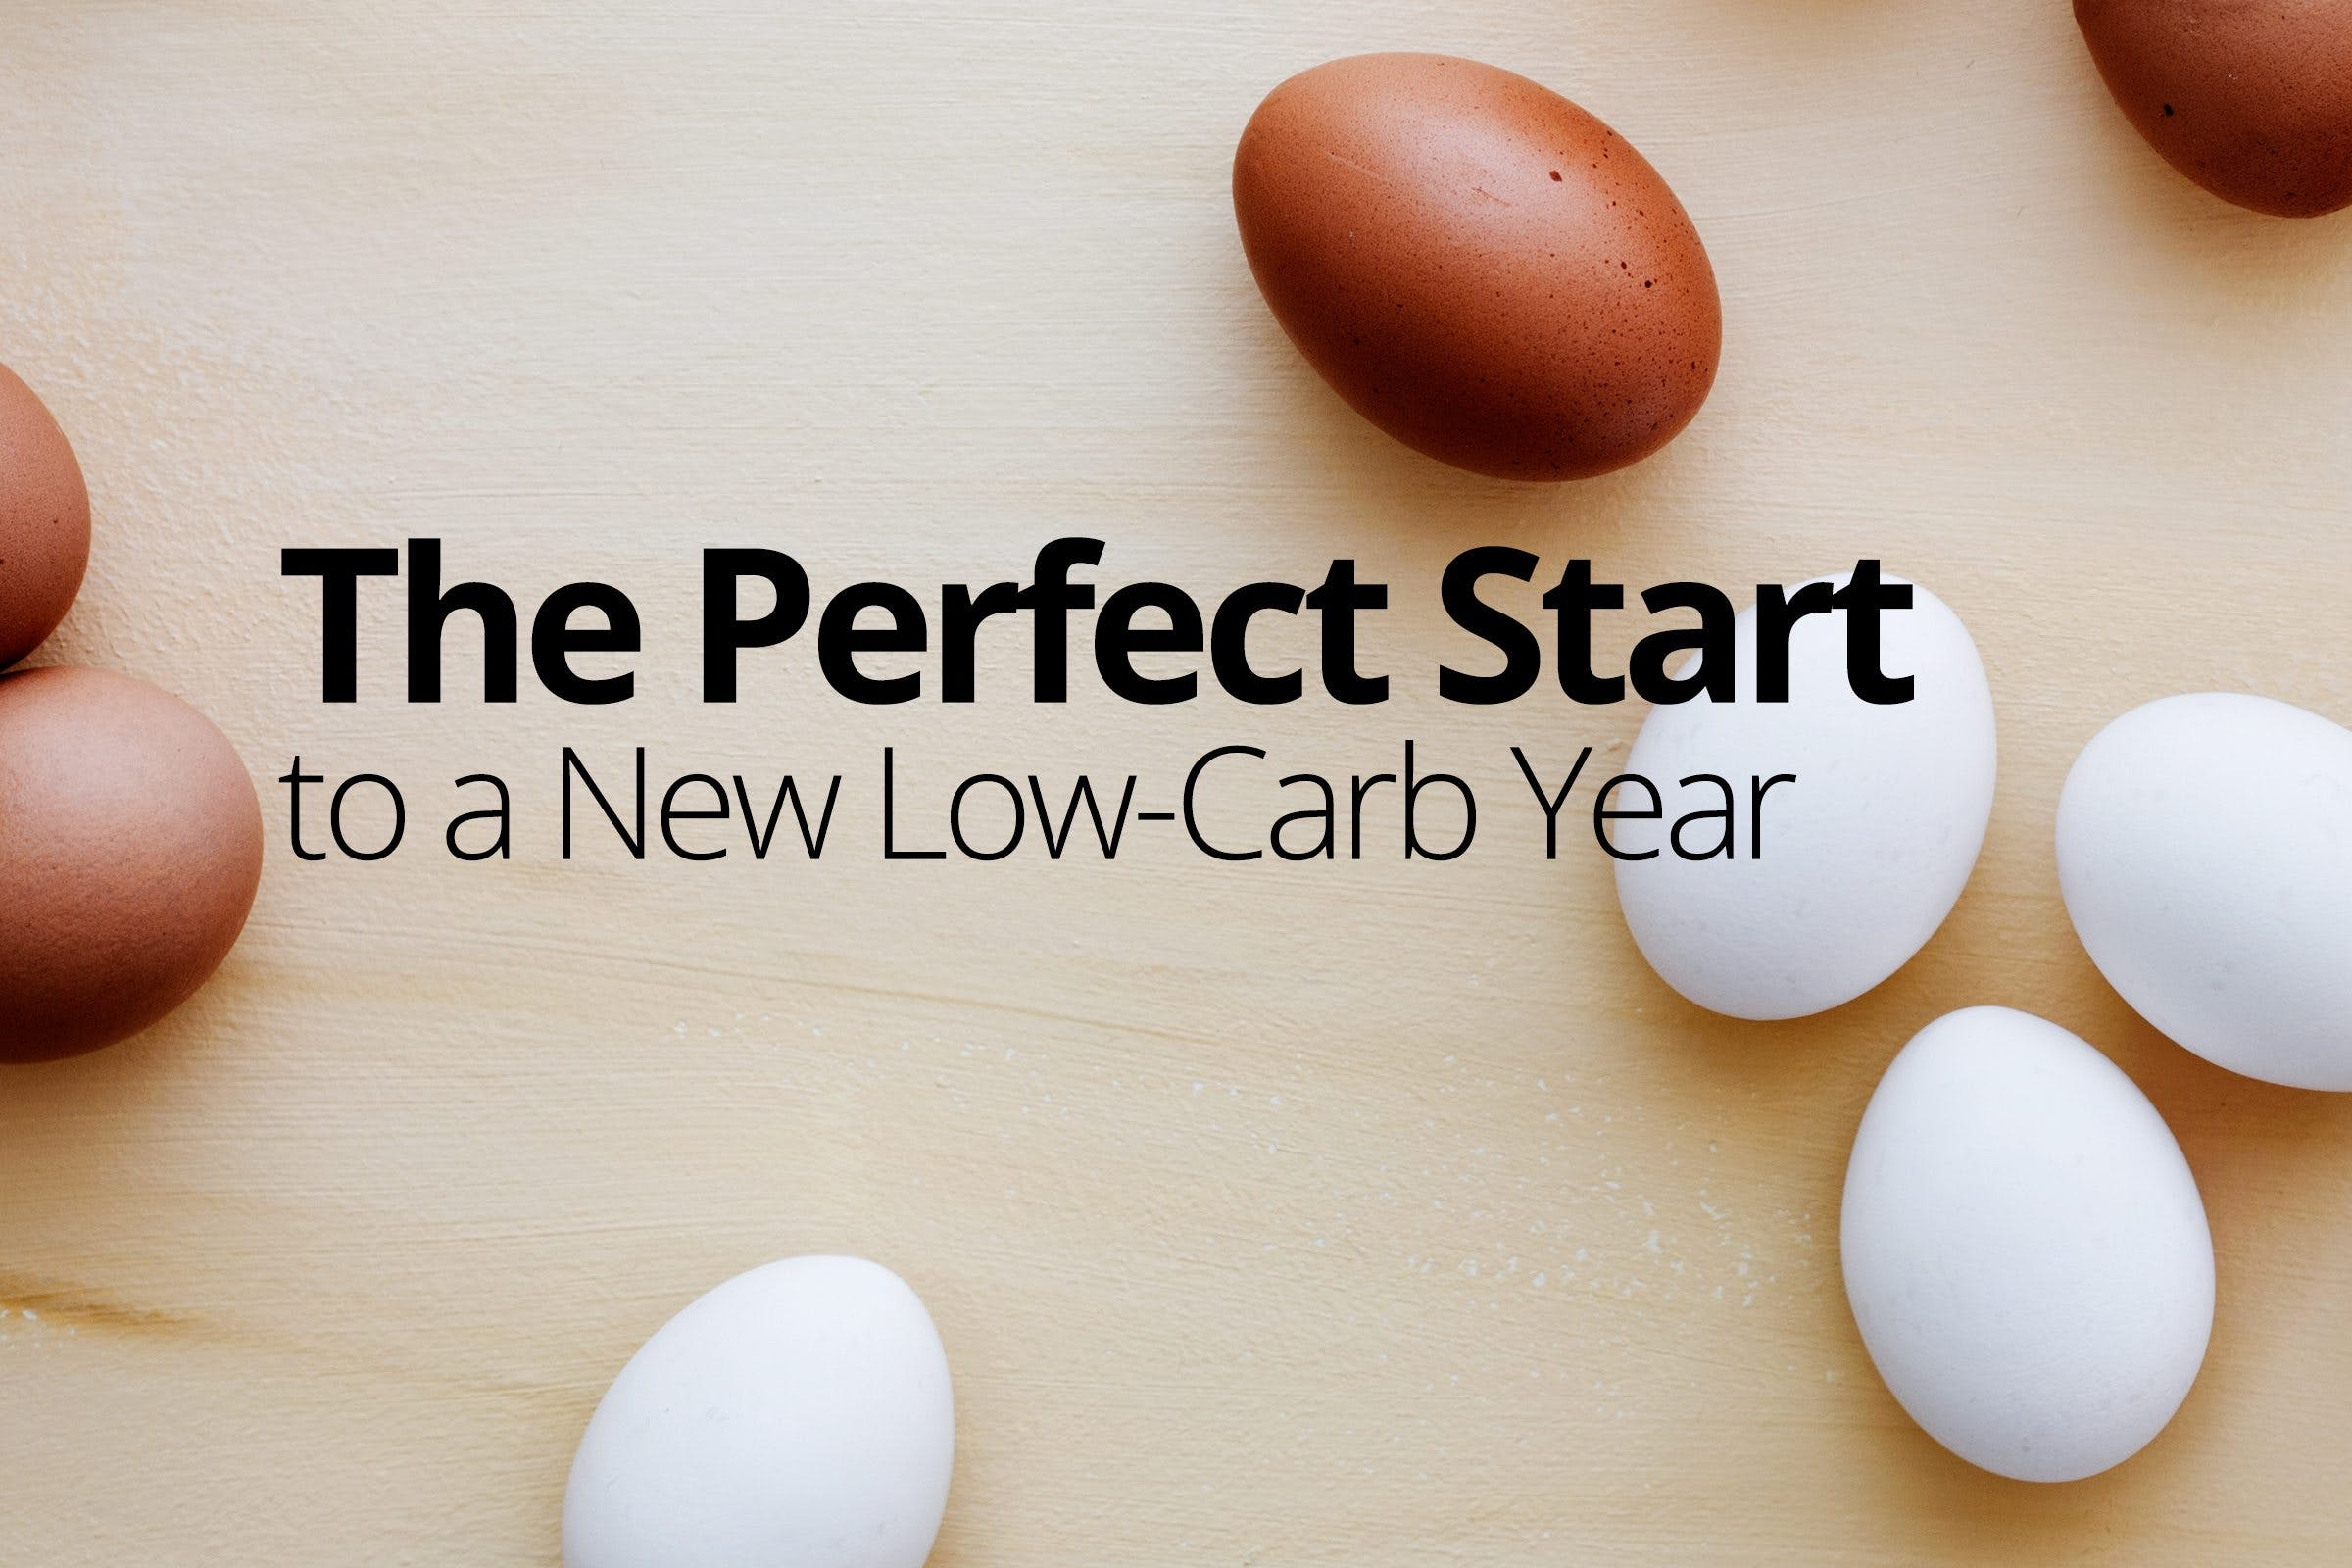 The Perfect Start to a New Low-Carb Year!